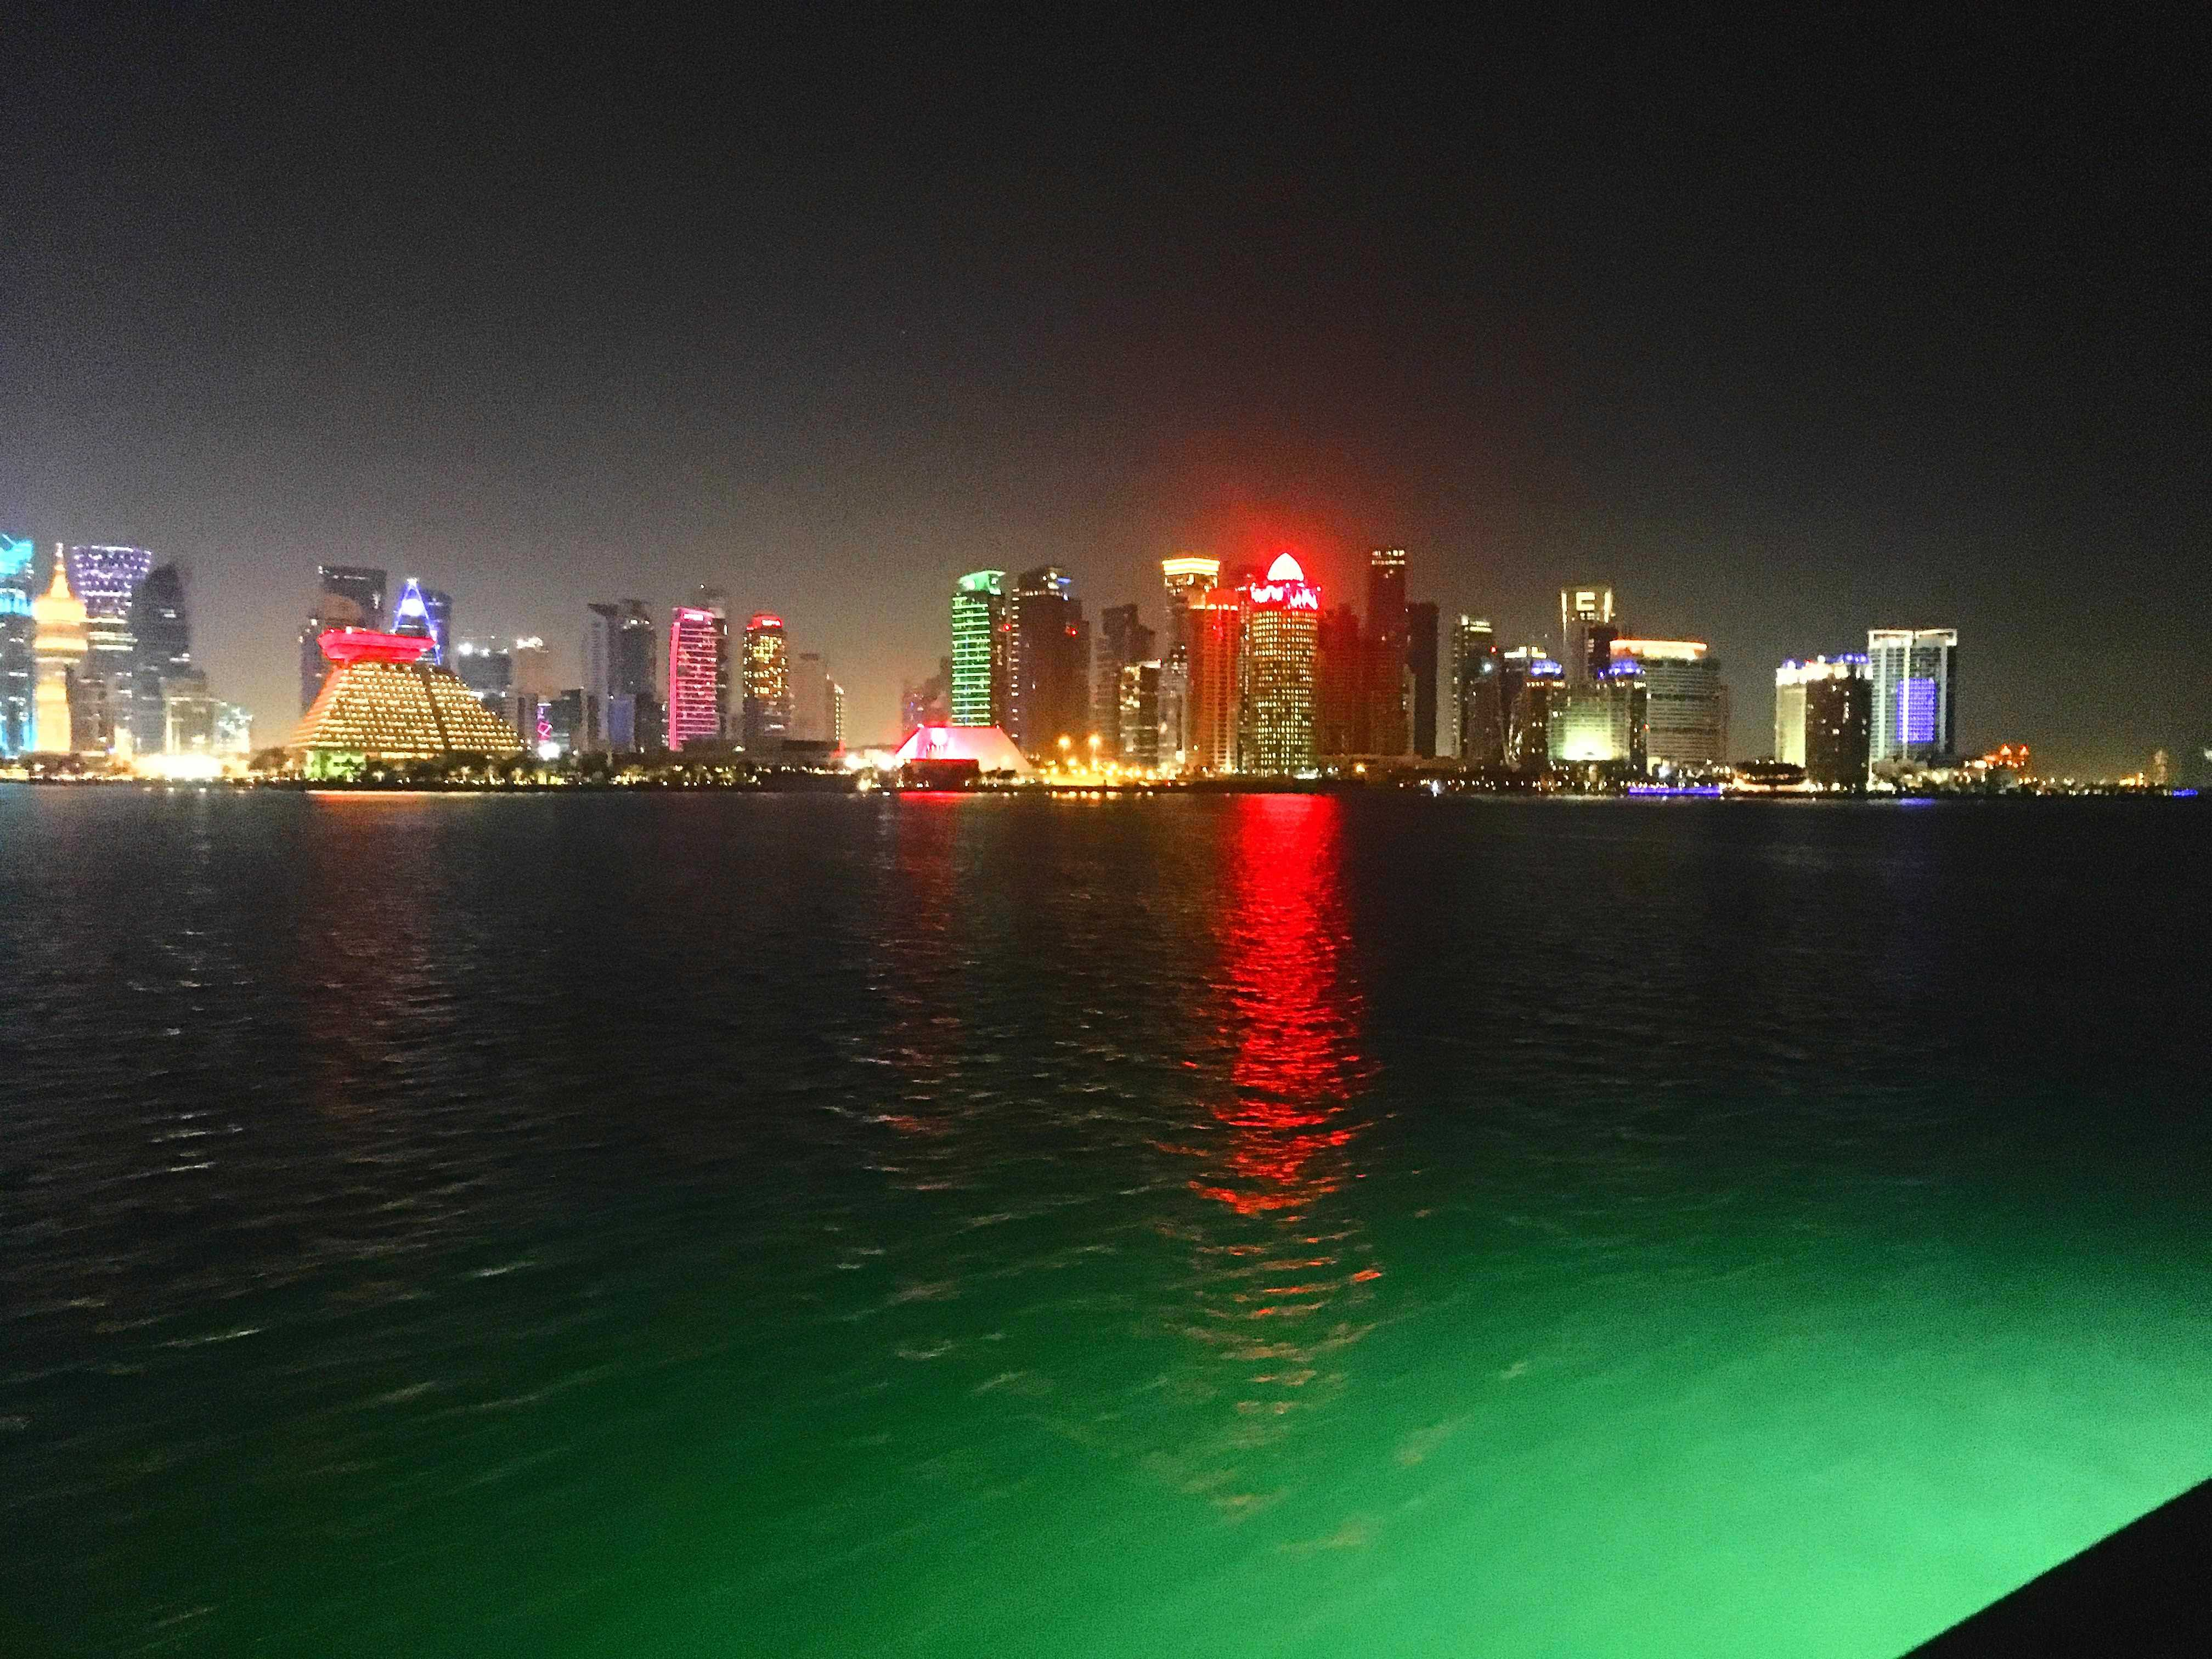 The skyline of Doha, Qatar from the Museum of Islamic Art. Courtesy of Sanders-Aboulila.